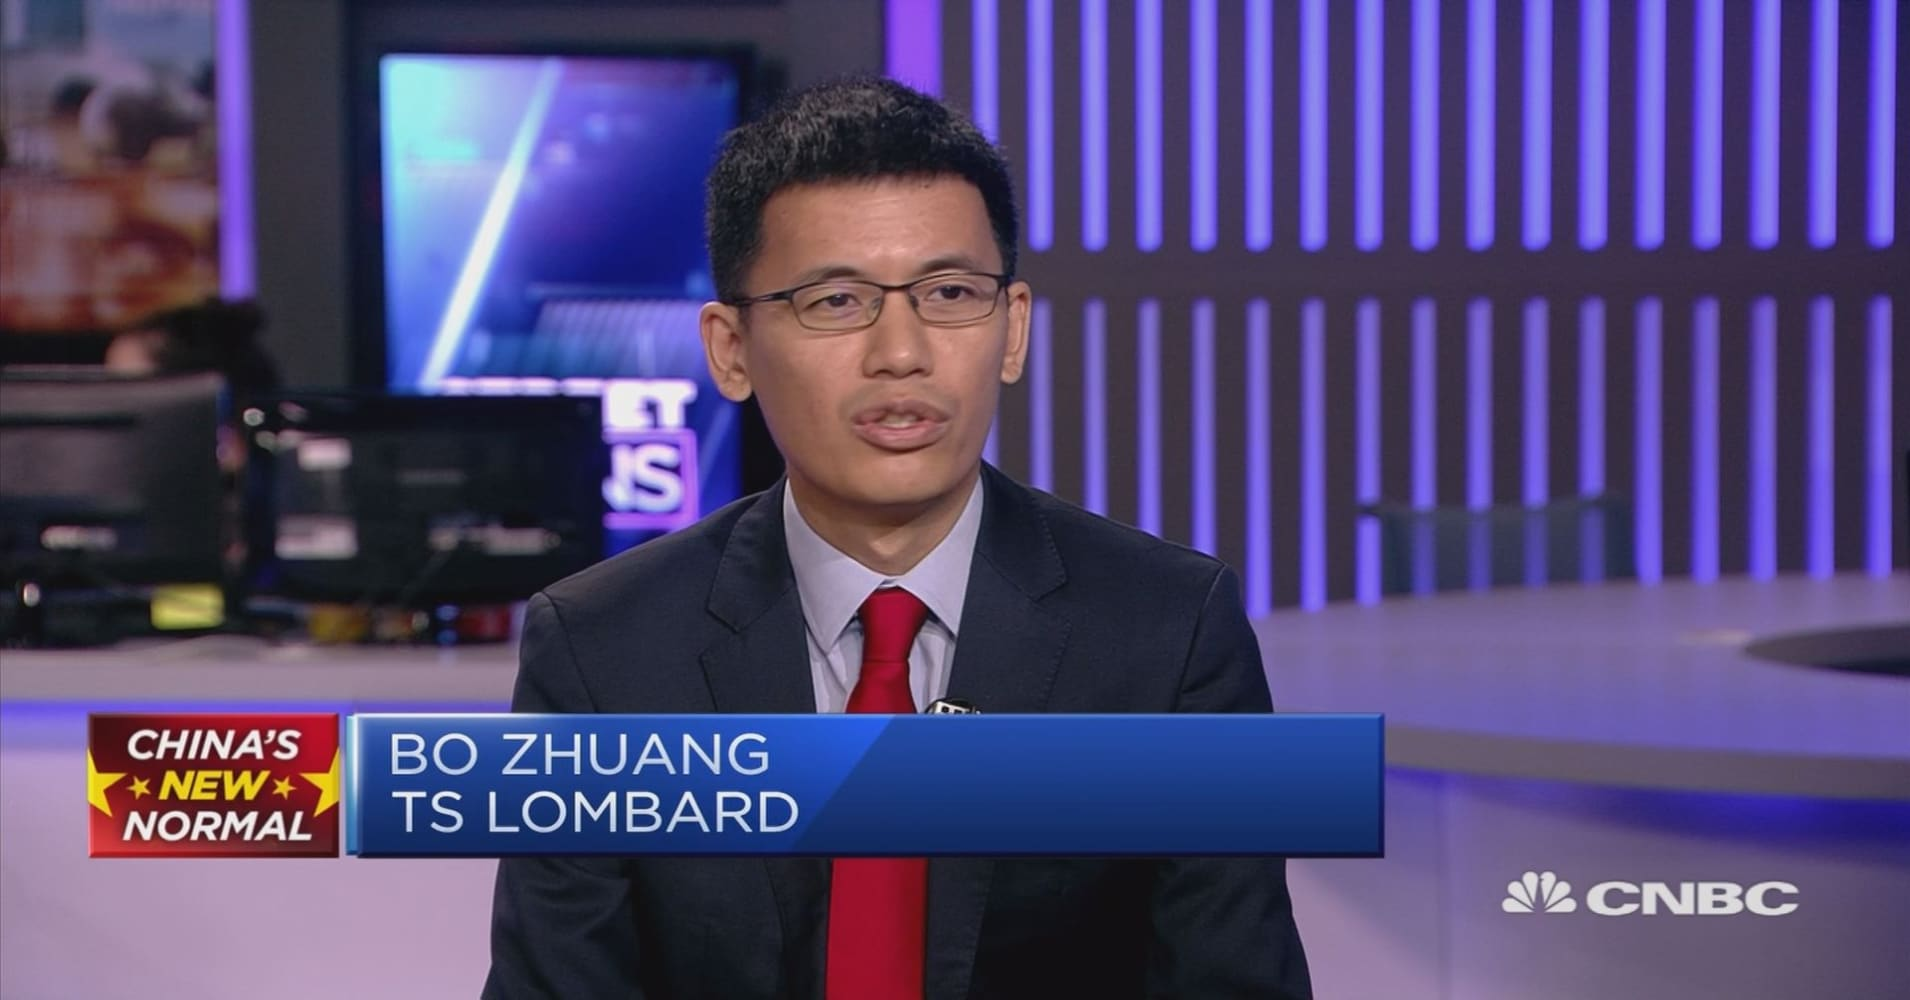 Chinese economic slowdown due to domestic issues — not trade war, strategist says